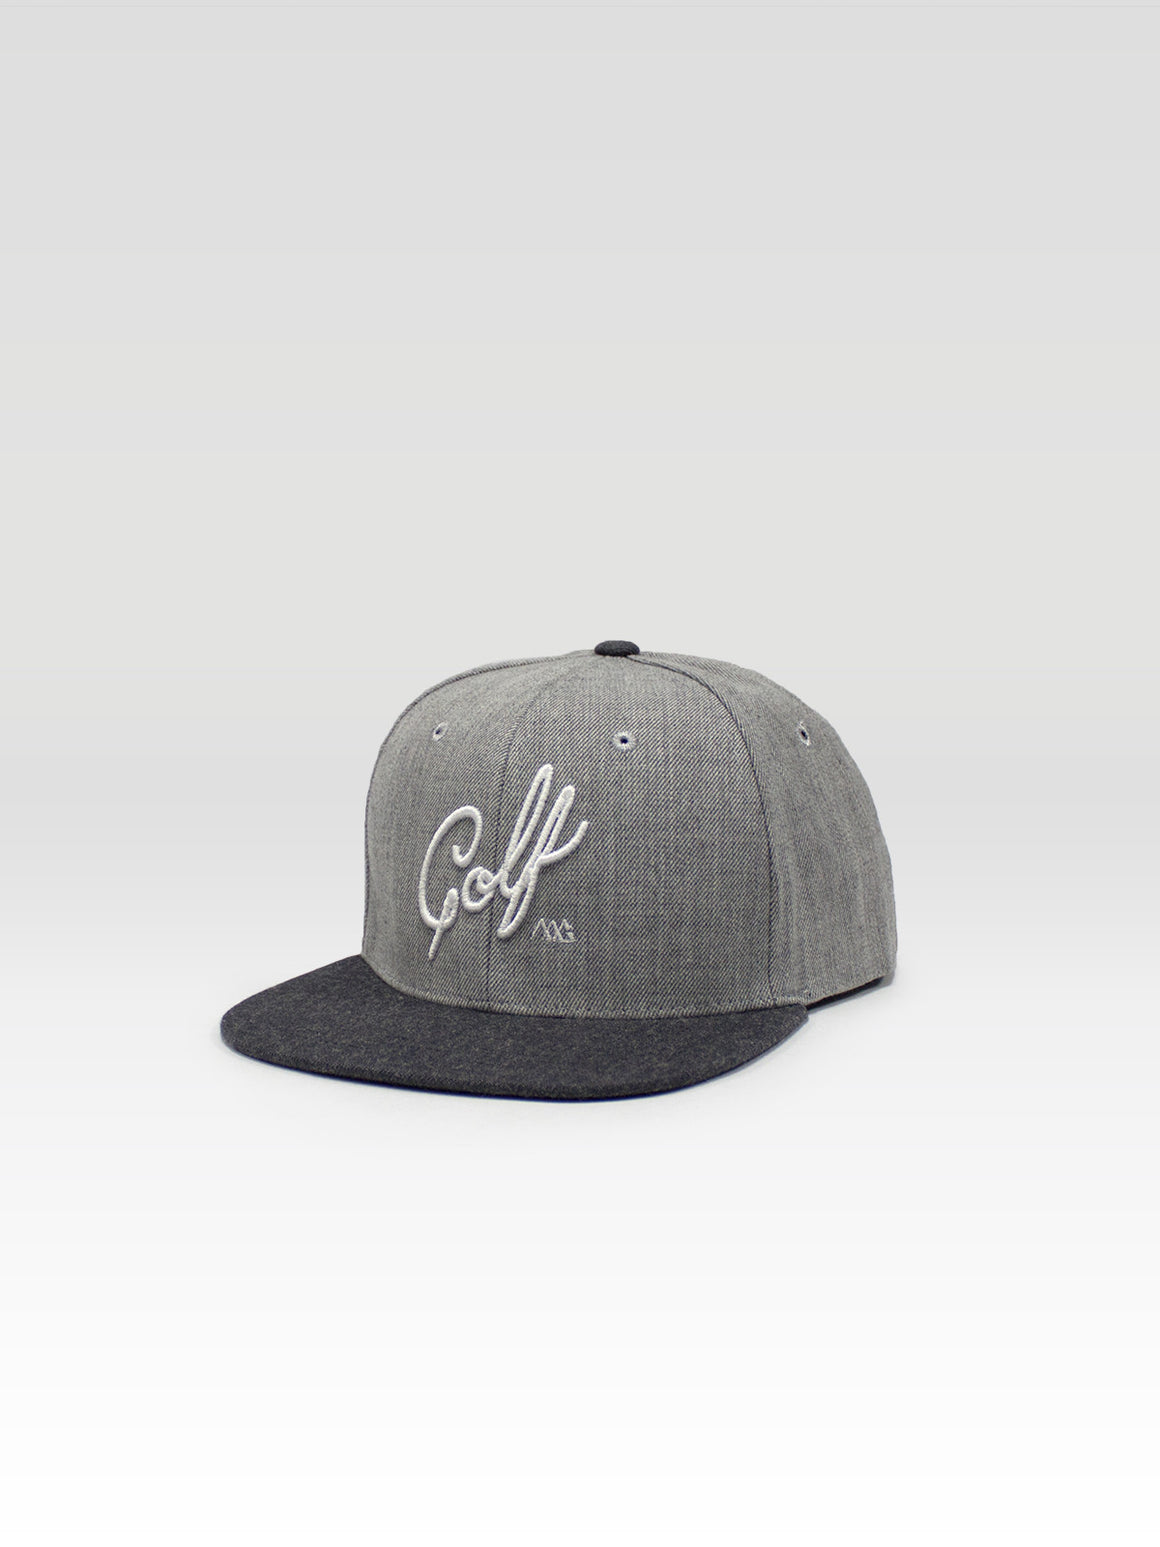 Script Snapback - Light Grey Heather / Charcoal Heather (White)